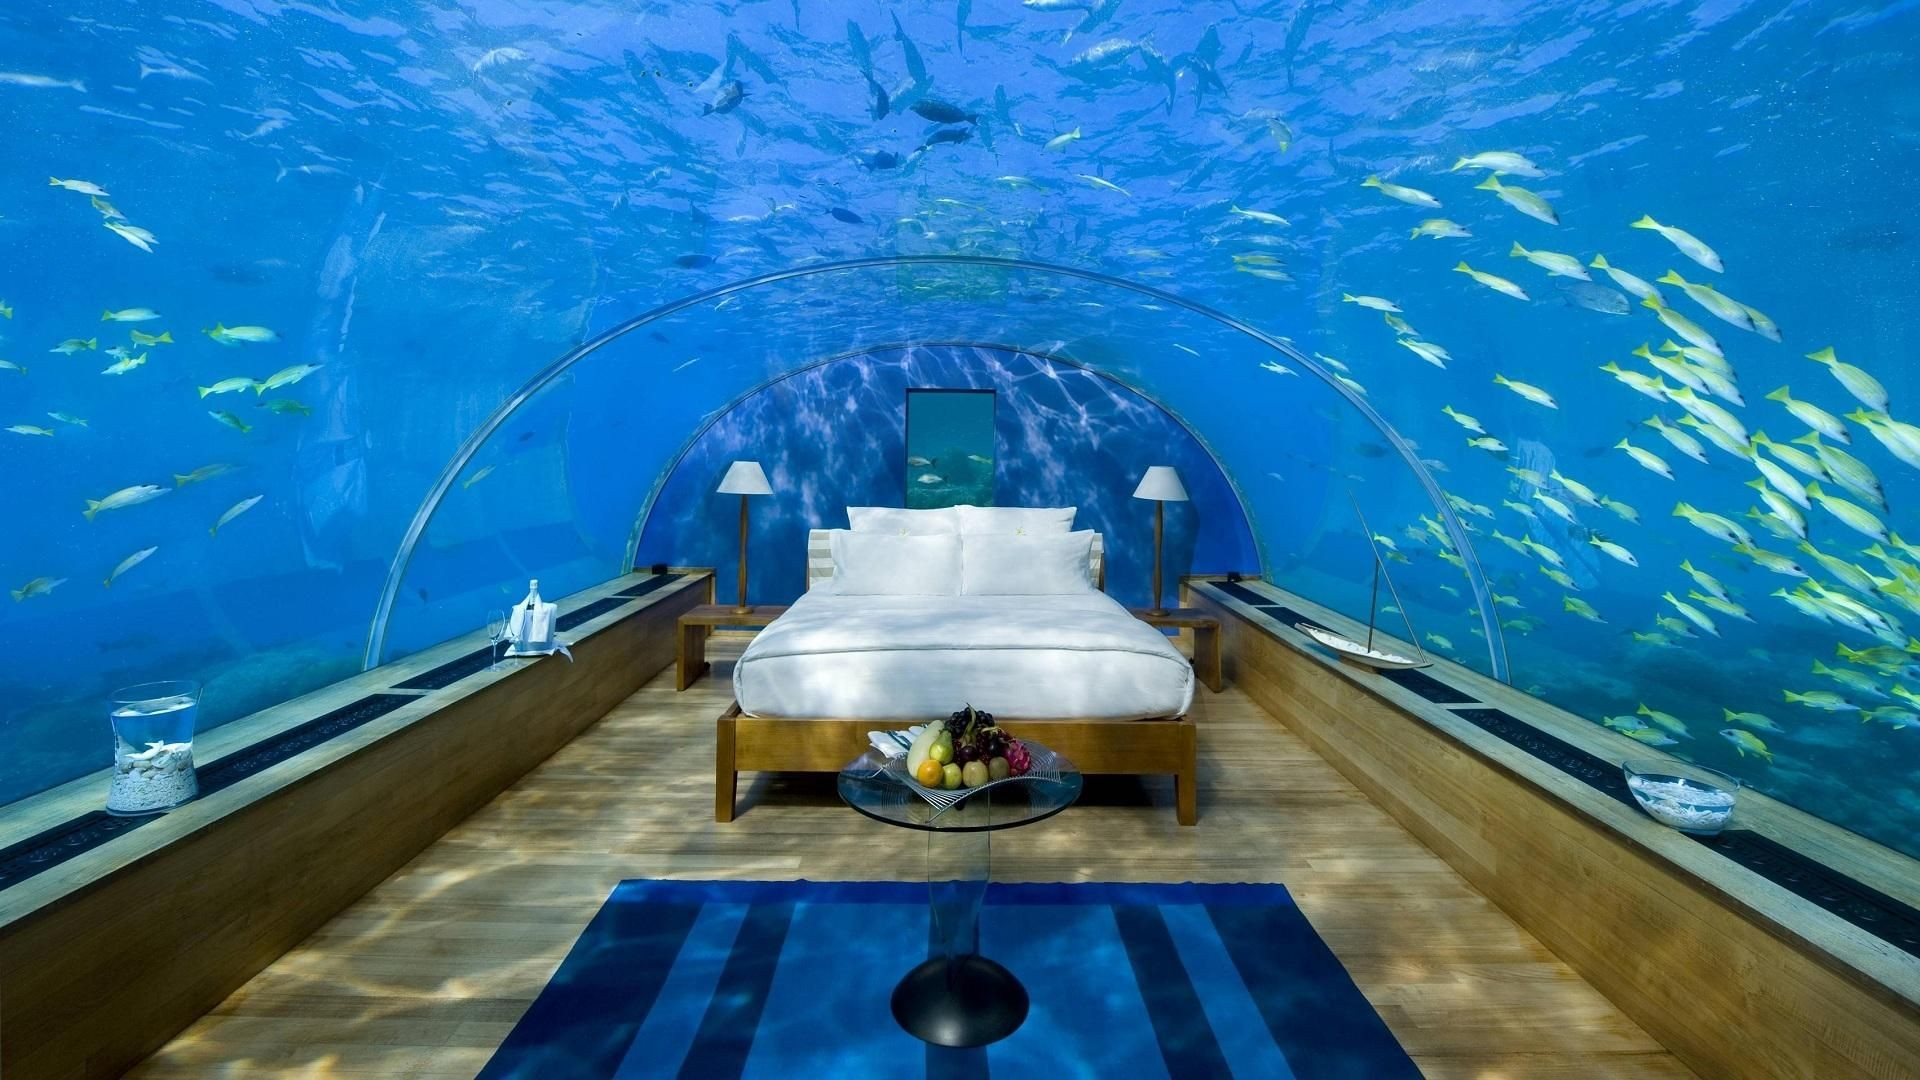 Coolest bedroom ever what i wouldn t give to live in that